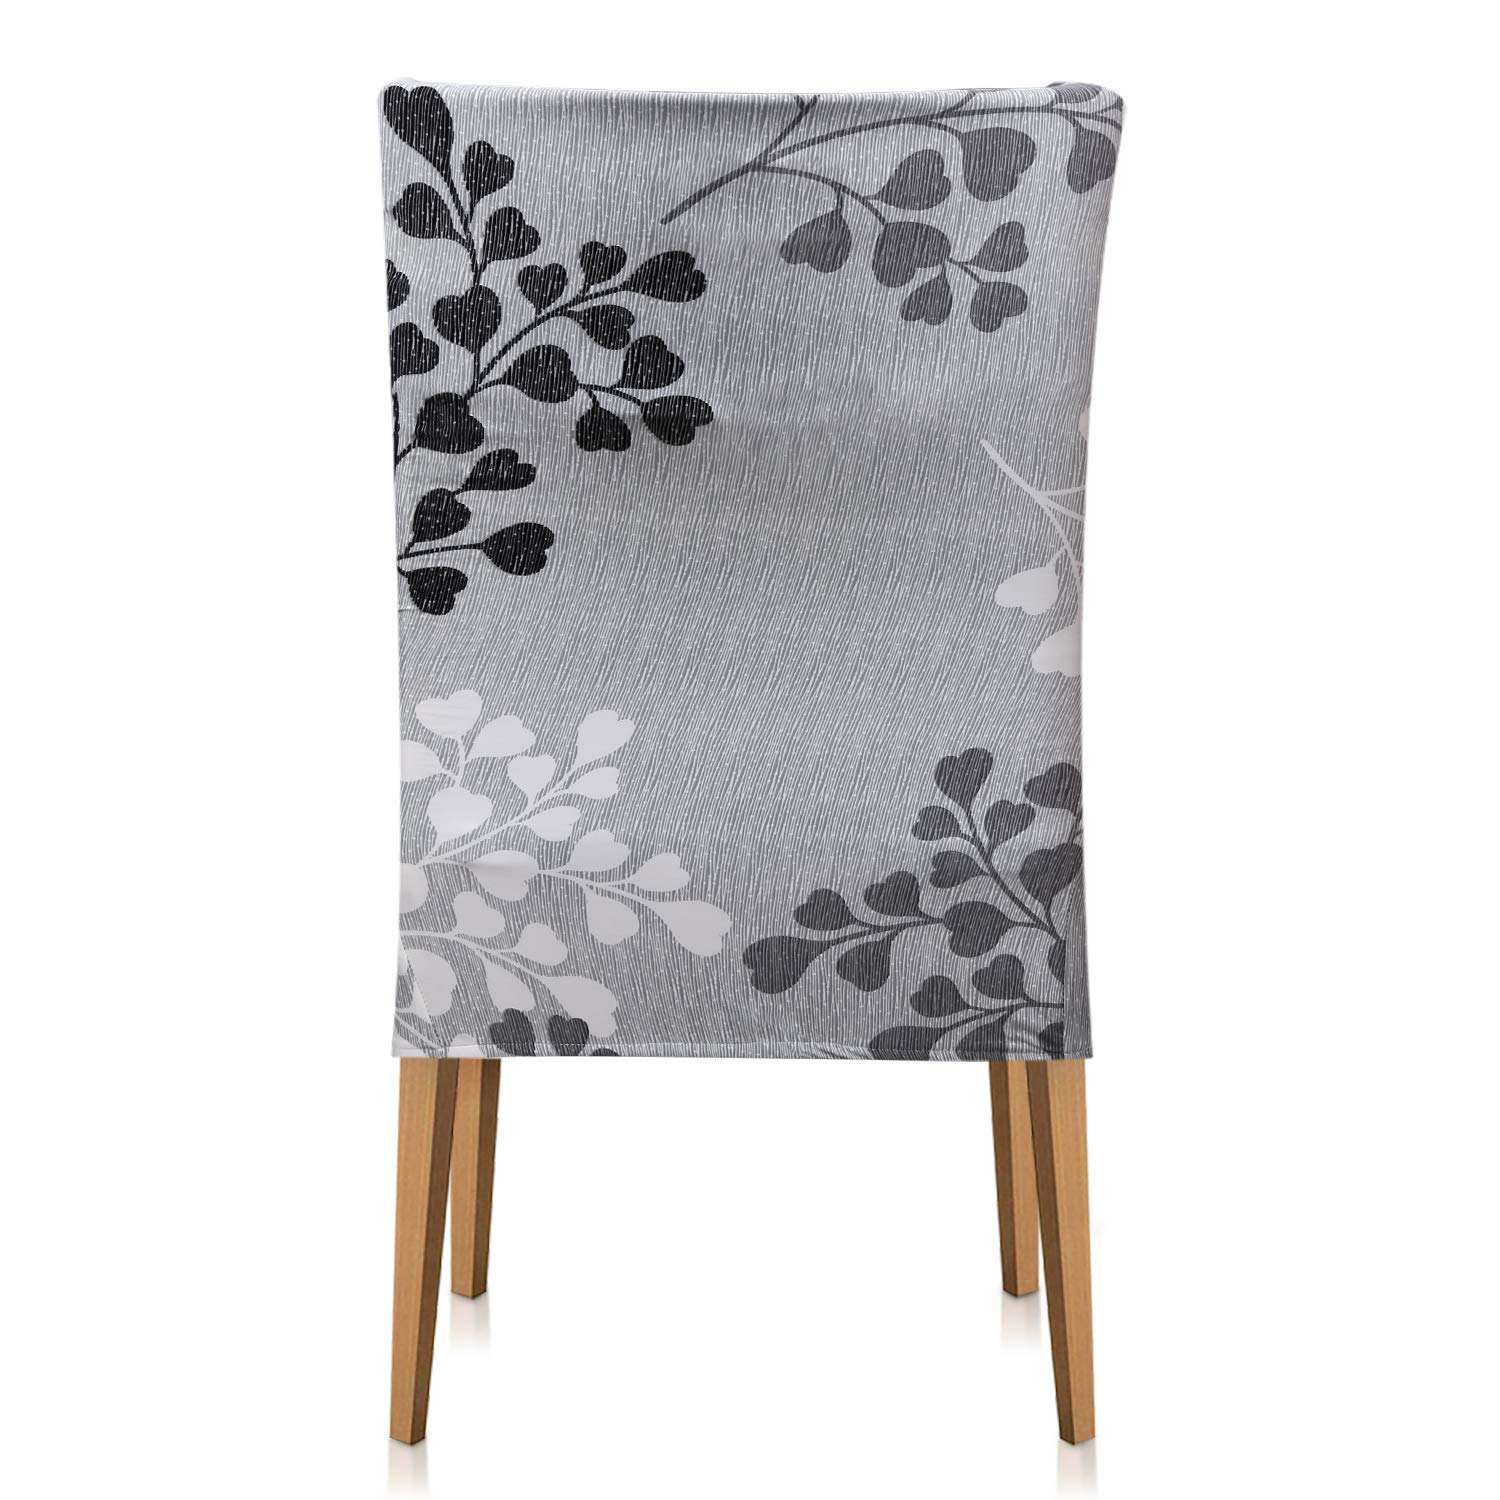 Xflyee Stretch Dining Room Chair Covers Jacquard Removable Washable